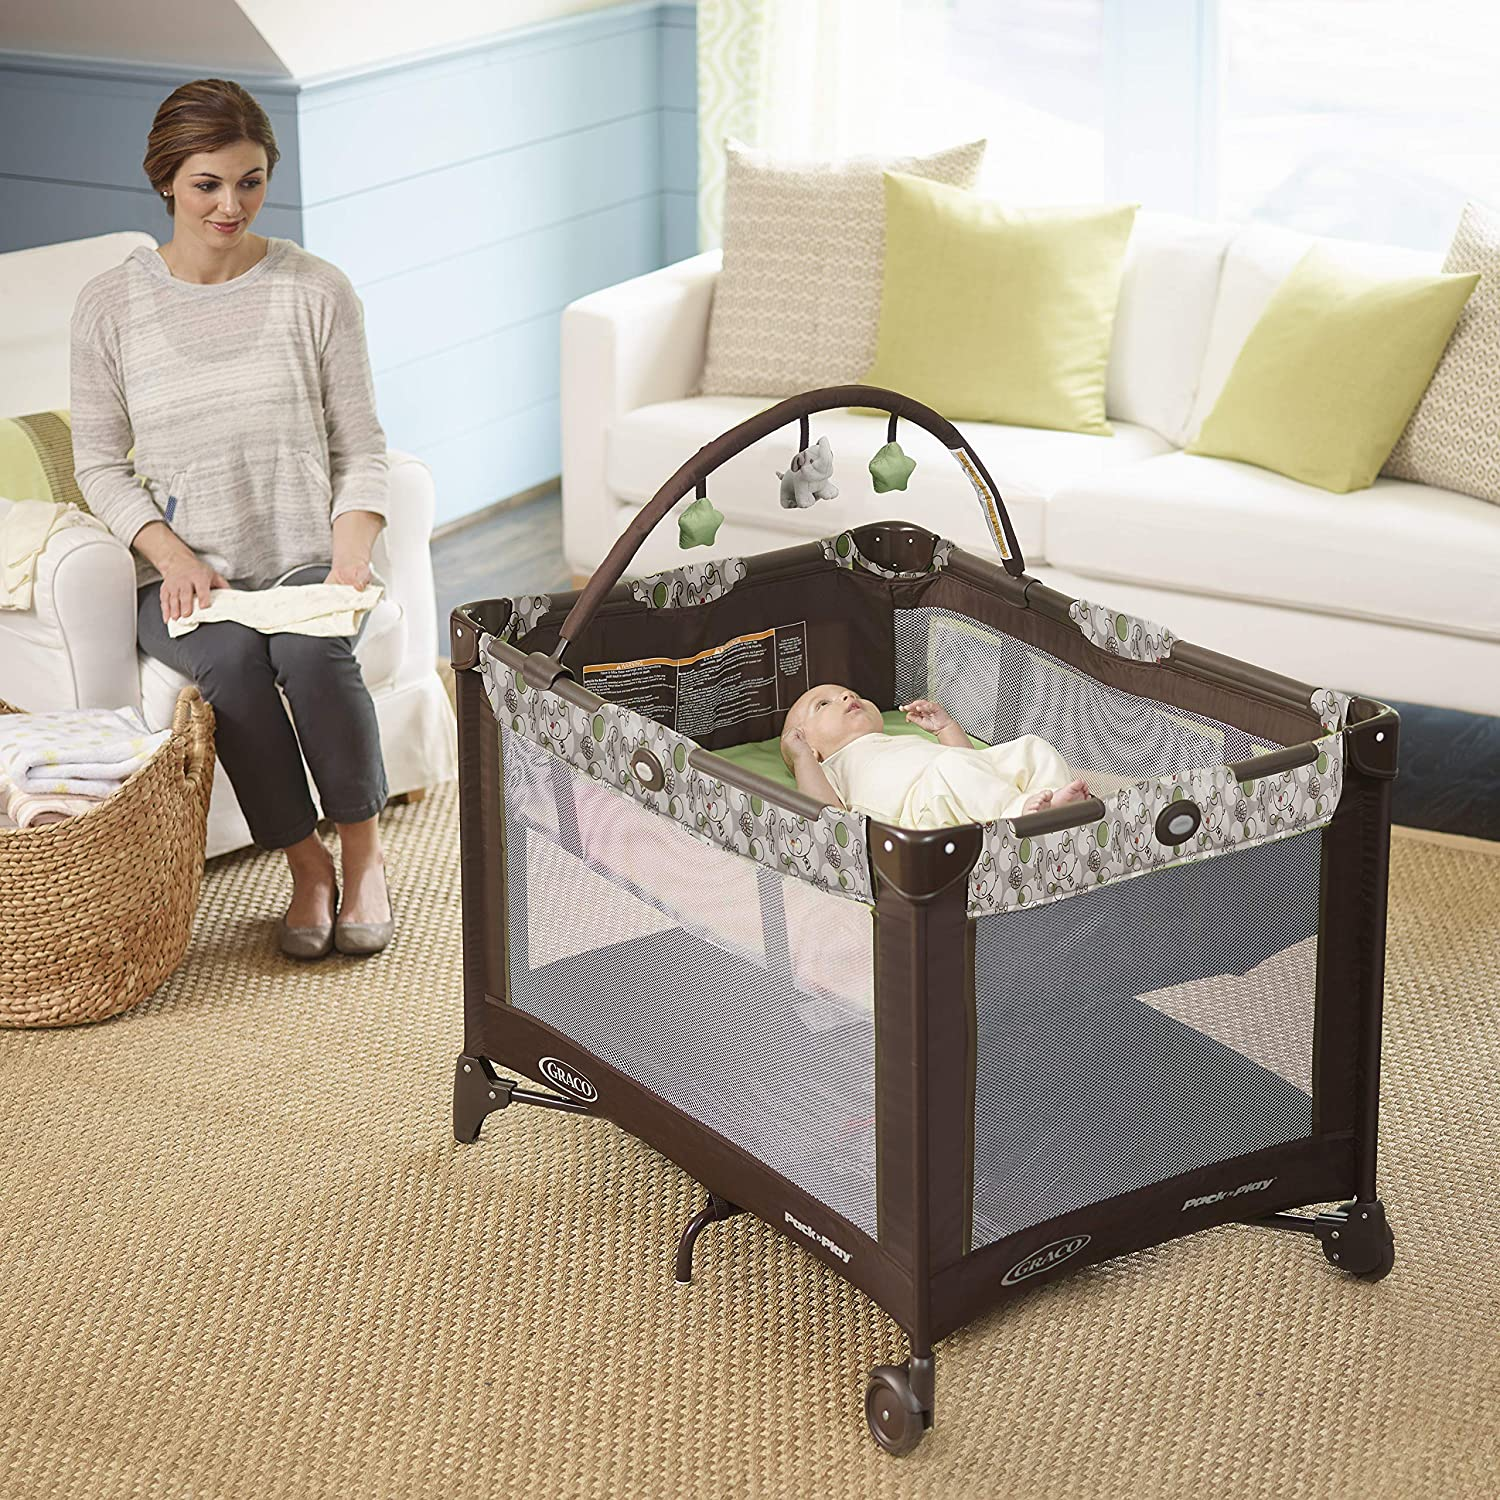 Zuba Graco Pack N Play Playard with Automatic Folding Feet